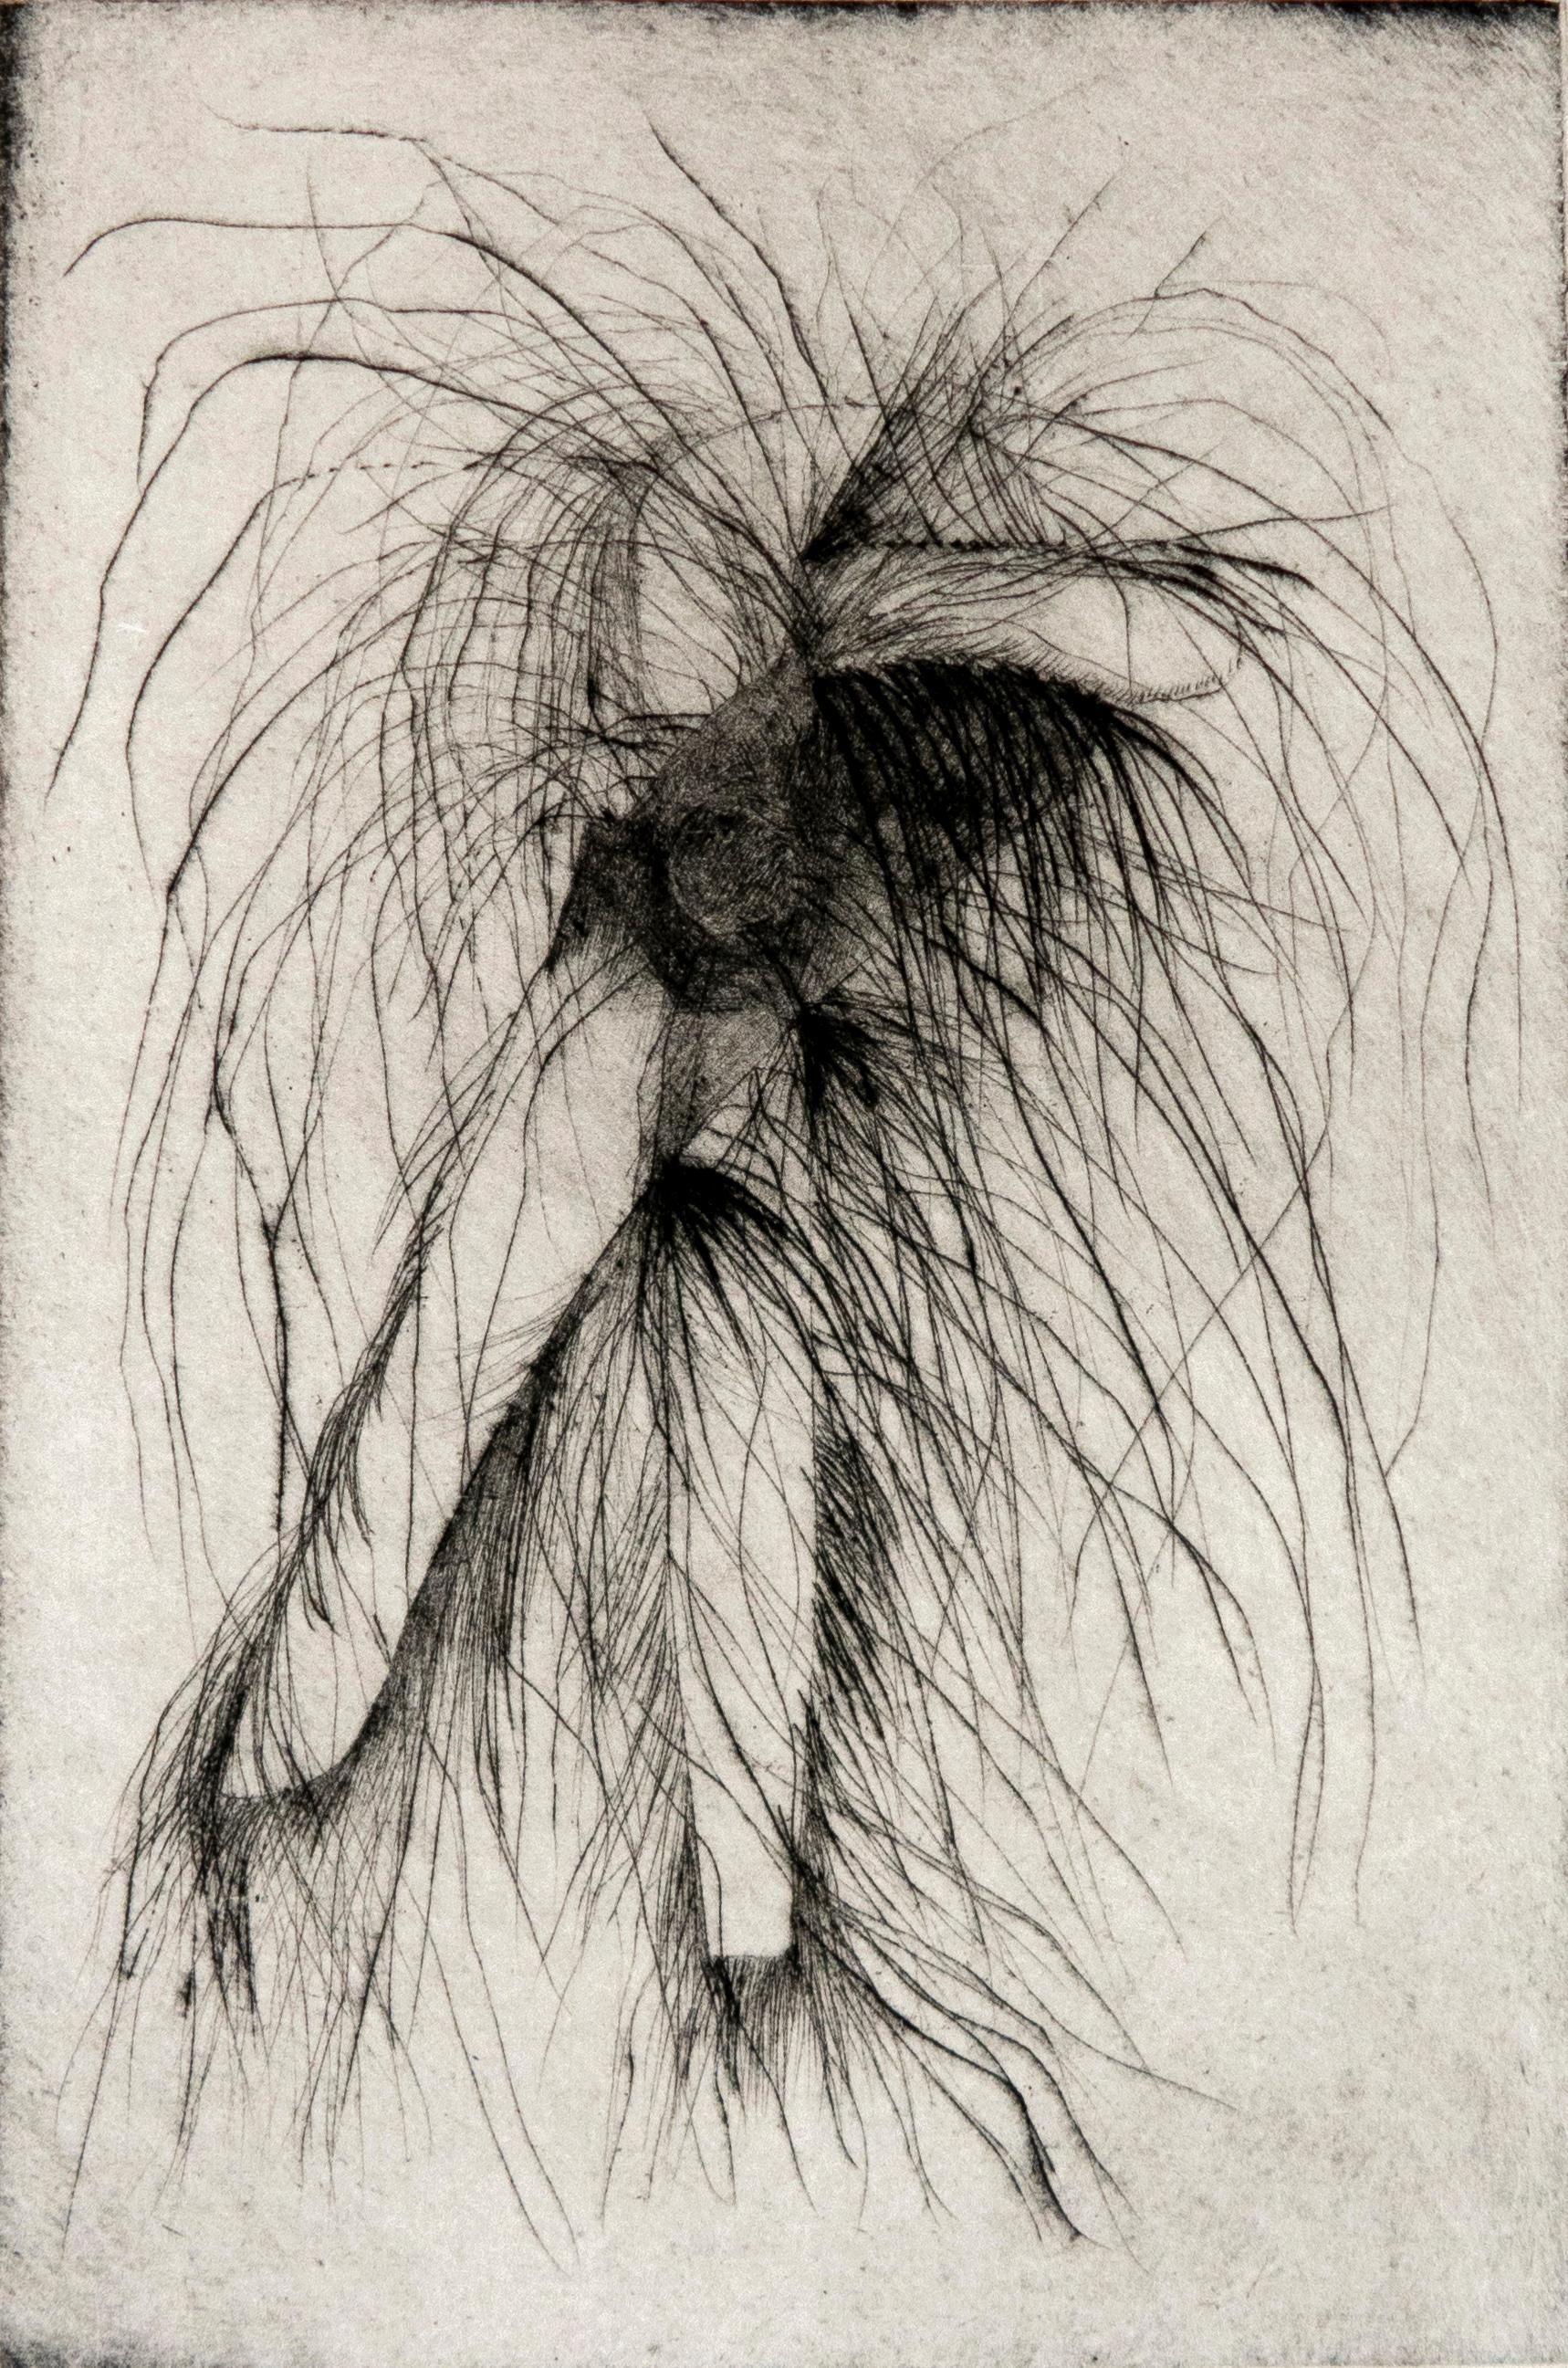 Tool Drypoint: Wrench by Jim Dine, black and white tool still life sketch